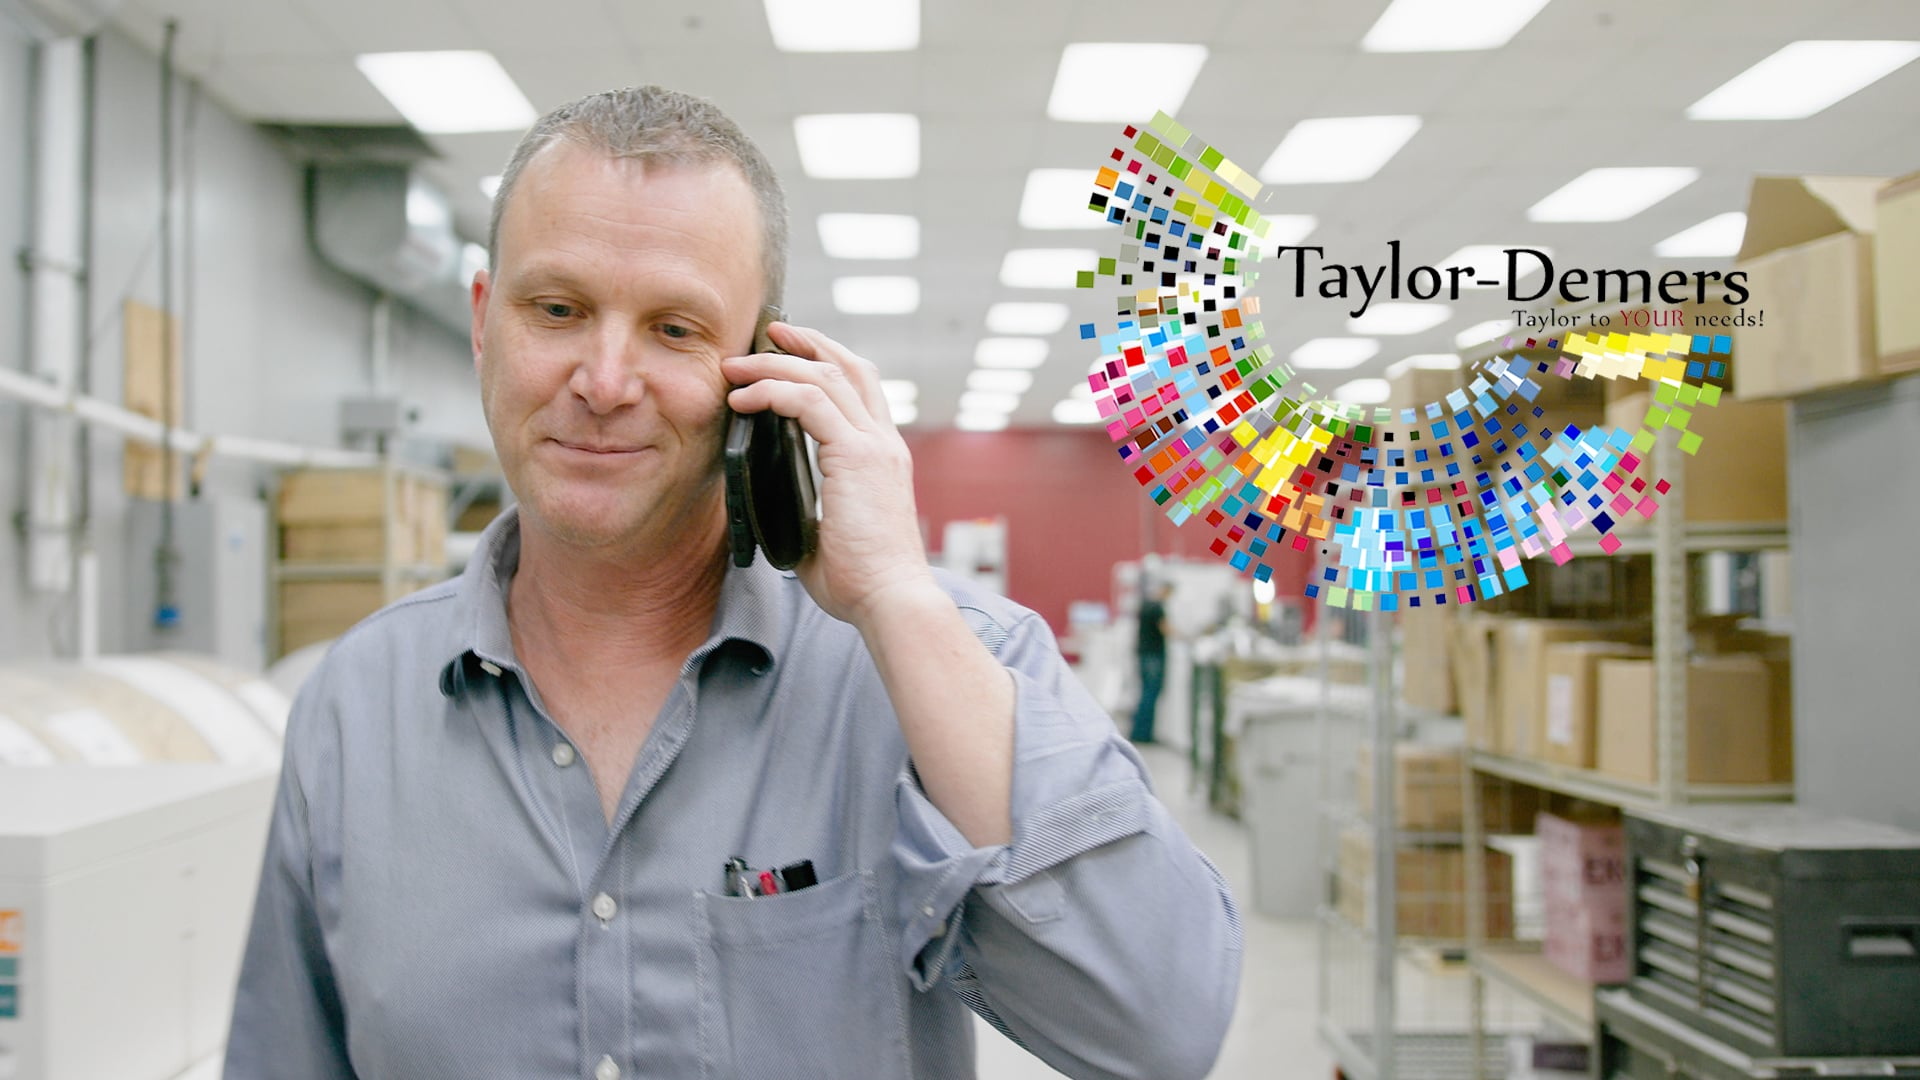 """Taylor Demers / """"Tailored To Your Needs"""""""